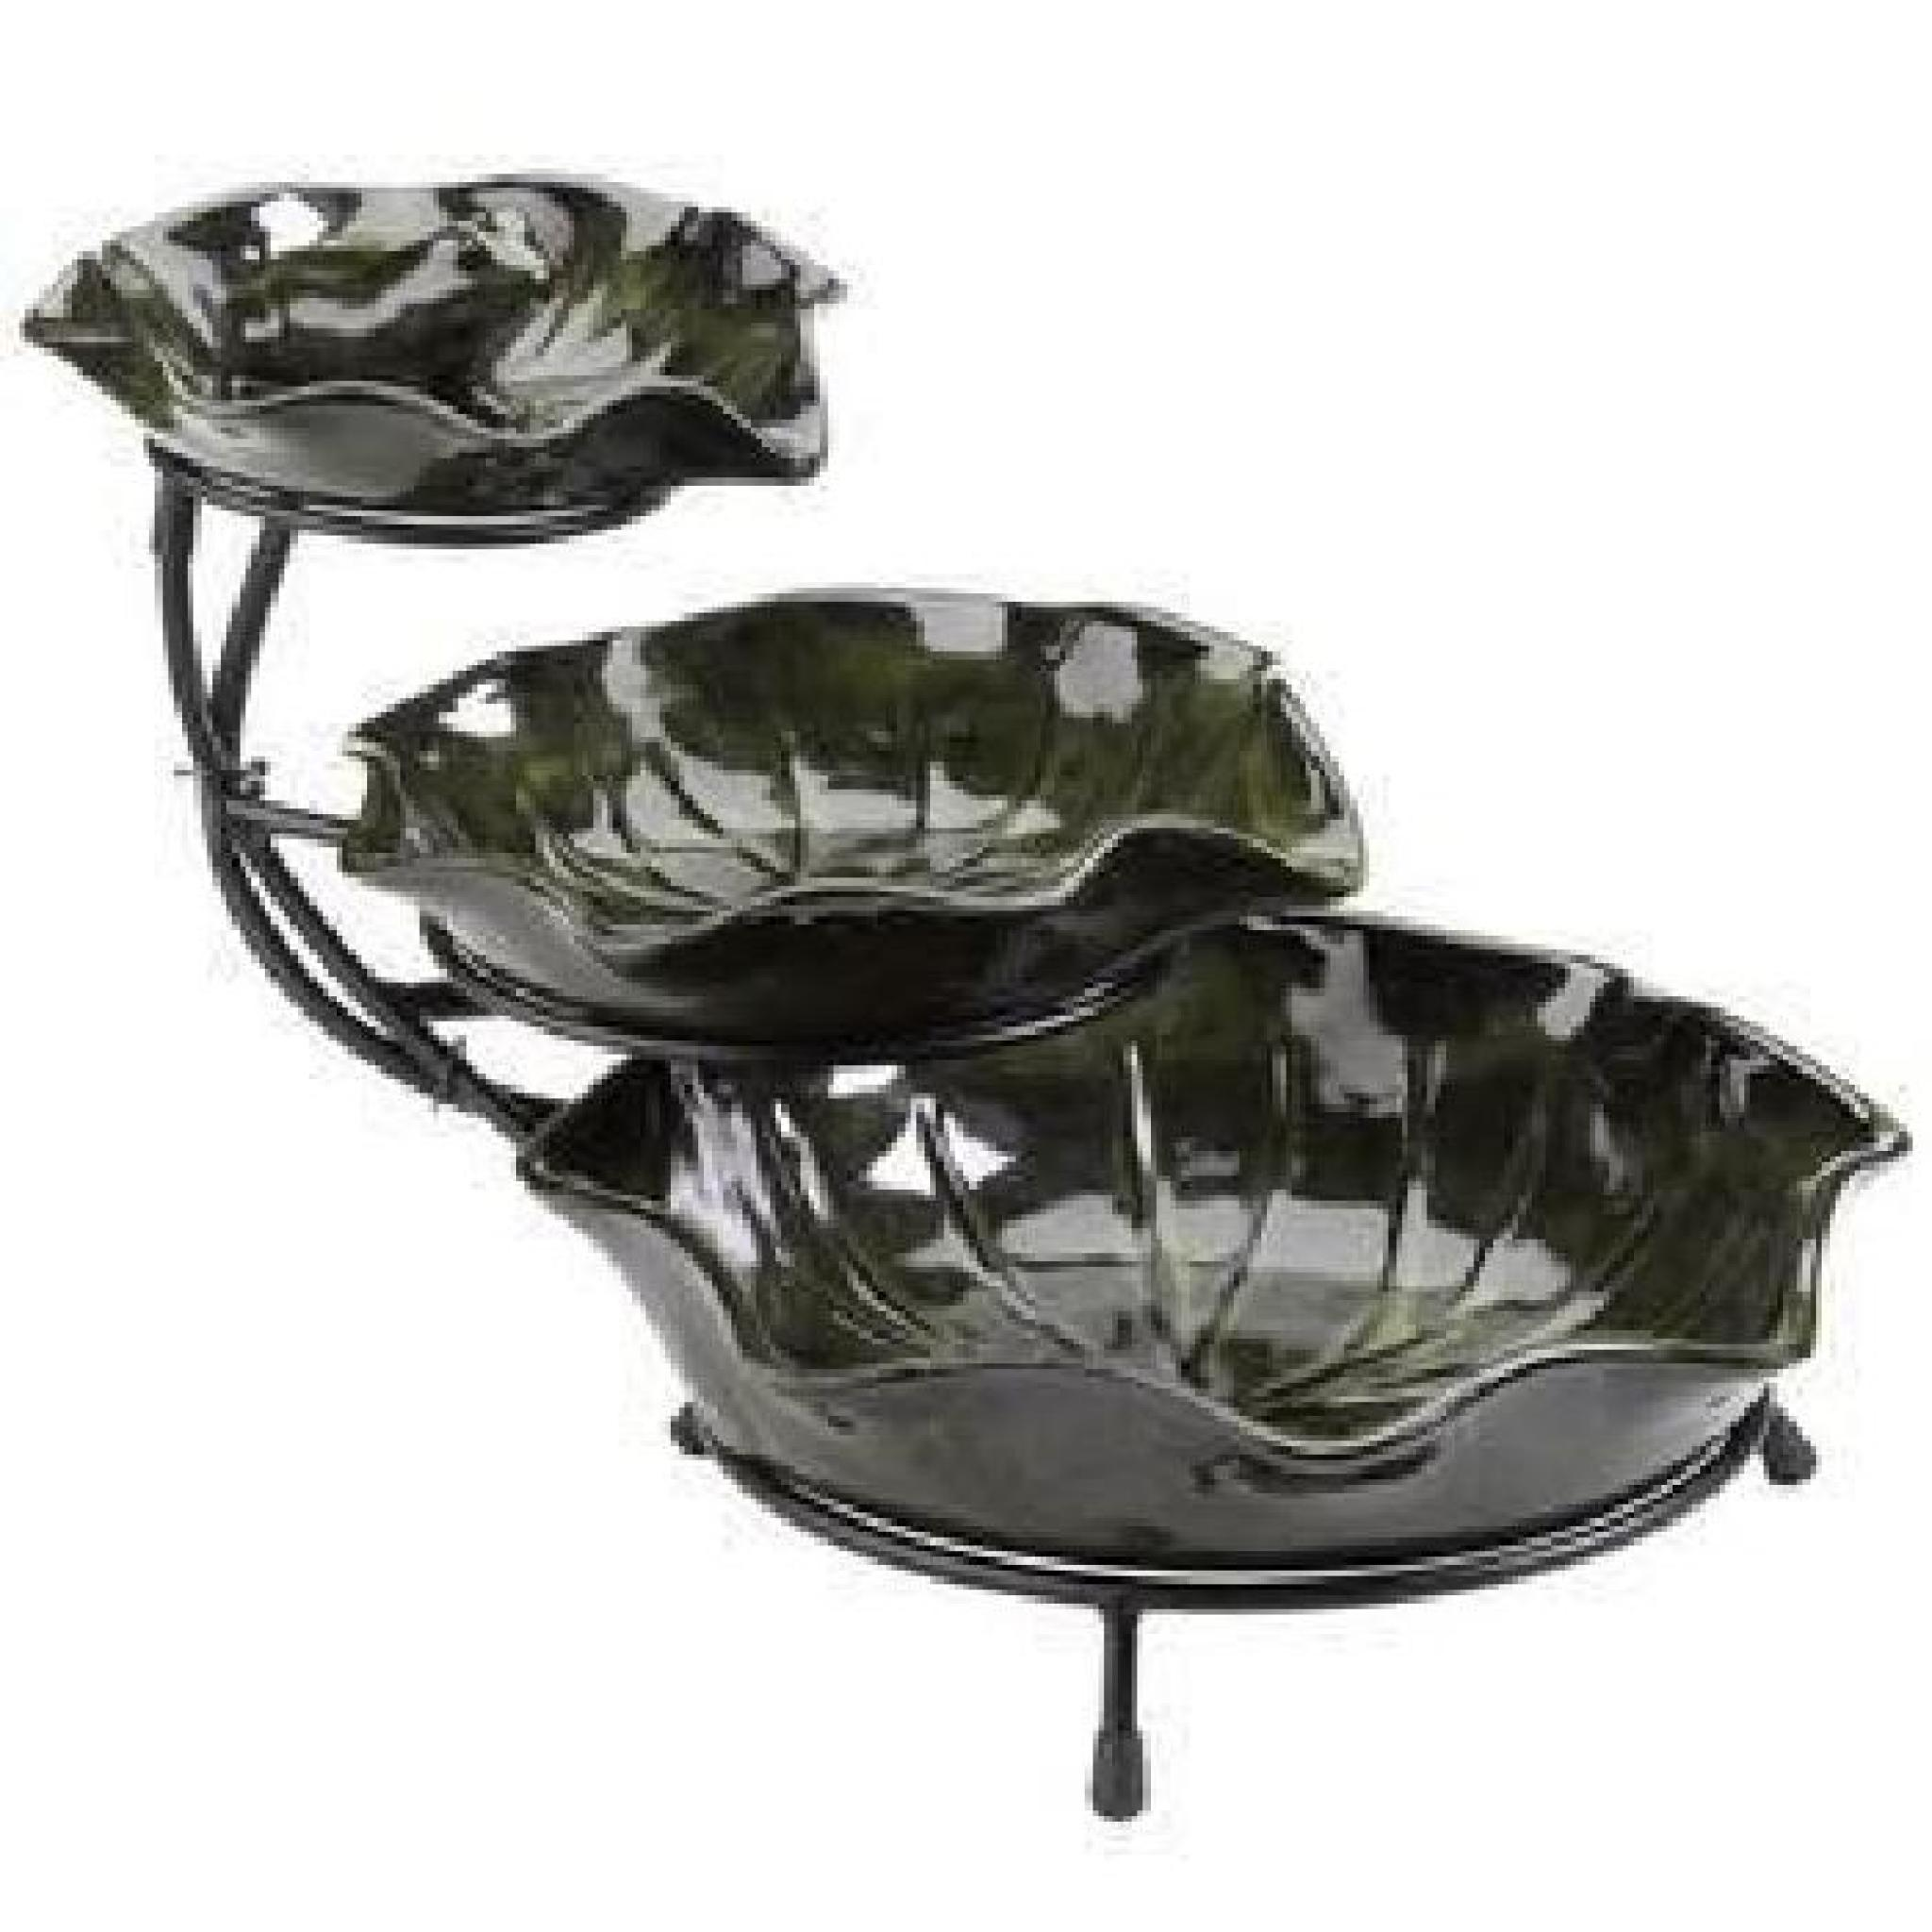 fontaine cascade solaire lilypad achat vente fontaine de jardin pas cher. Black Bedroom Furniture Sets. Home Design Ideas